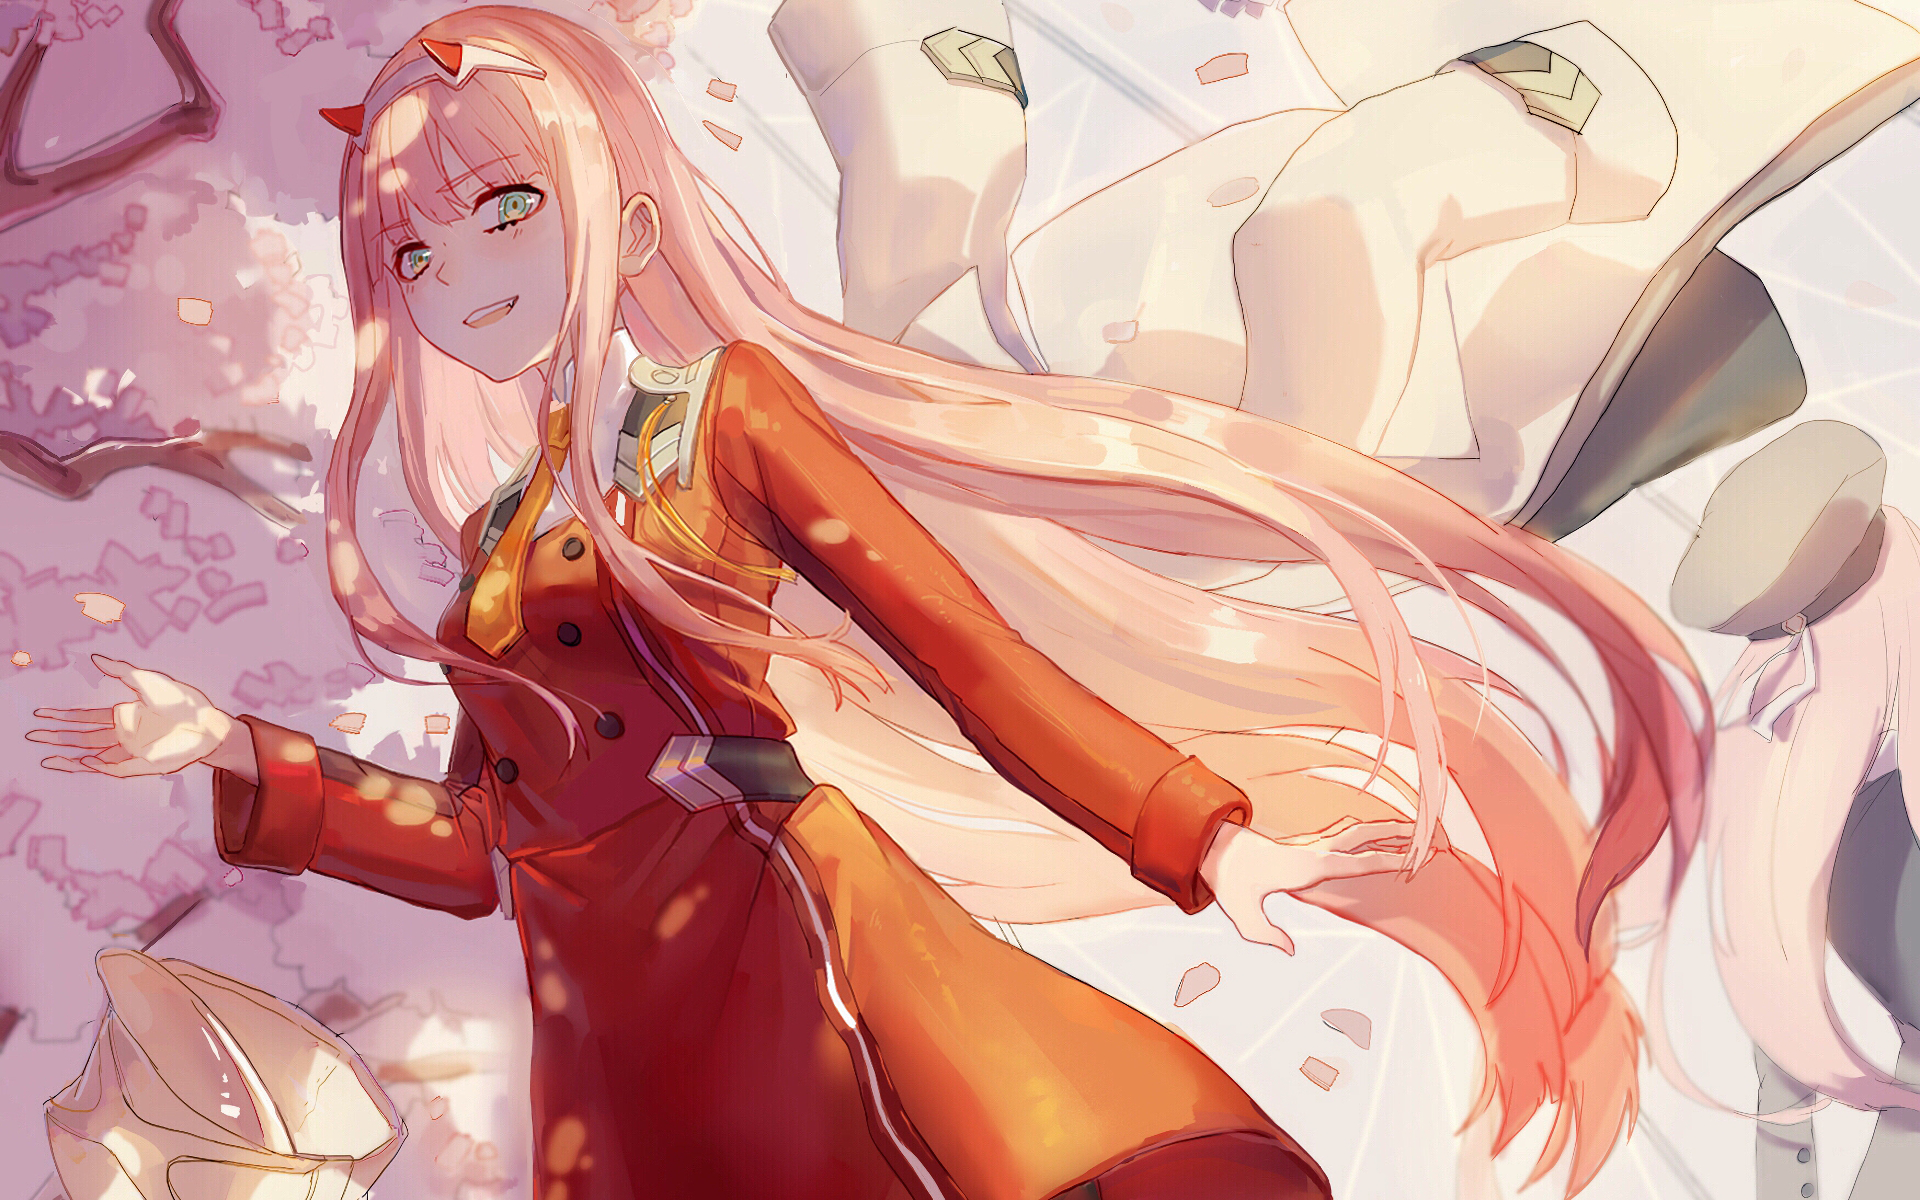 Anime - Darling in the FranXX  Zero Two (Darling in the FranXX) Wallpaper